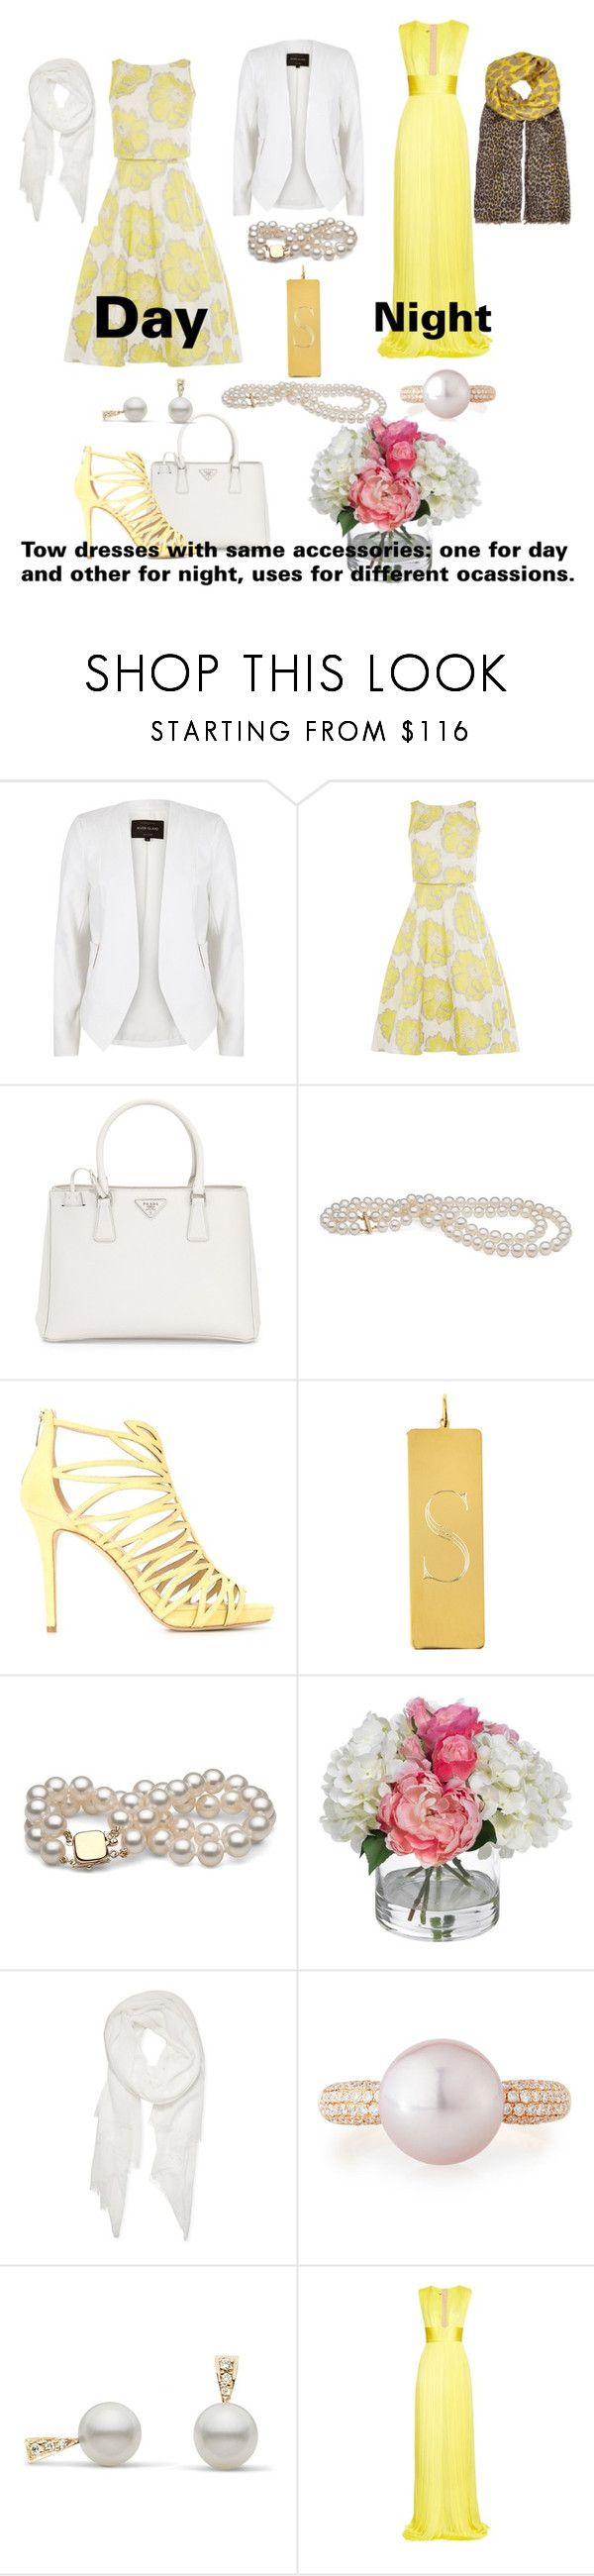 """""""Hijab or not in day or night"""" by surat-iraqea ❤ liked on Polyvore featuring River Island, Prada, Jimmy Choo, Sarah Chloe, Diane James, Calvin Klein, Belpearl, Maria Lucia Hohan and Mercy Delta"""